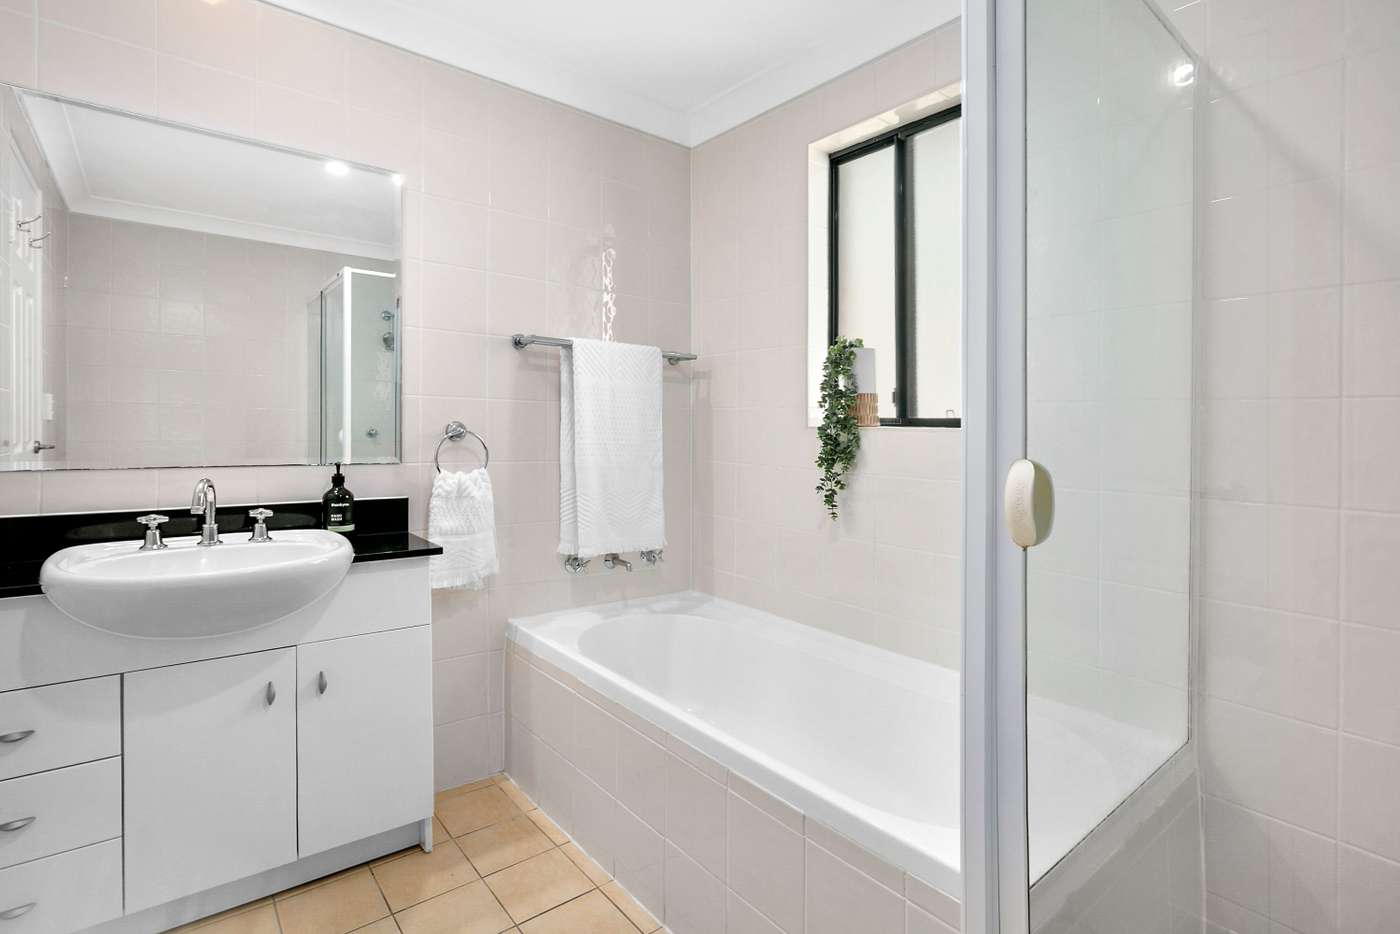 Fifth view of Homely apartment listing, 21/30-34 Gordon Street, Manly Vale NSW 2093